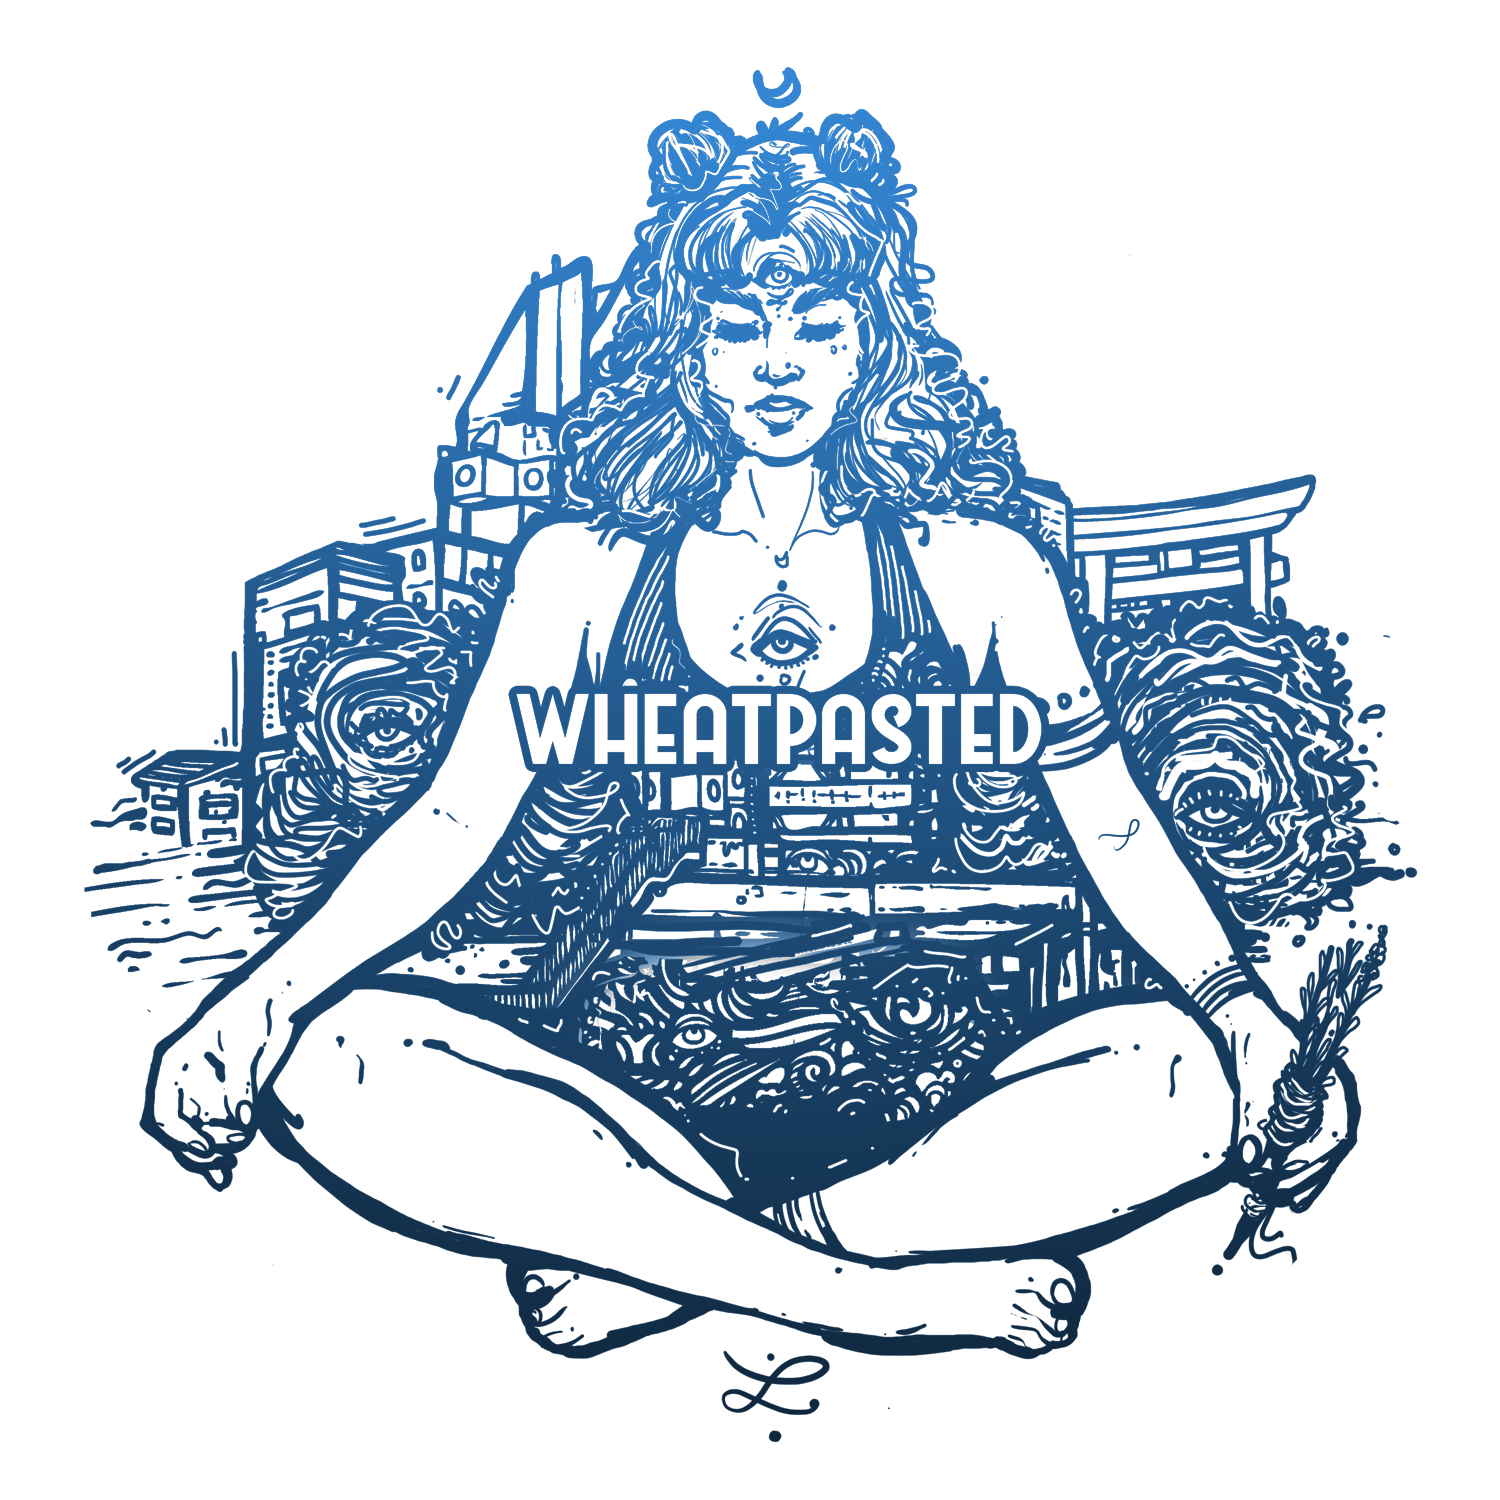 Andrea Georgas / WHEATPASTED